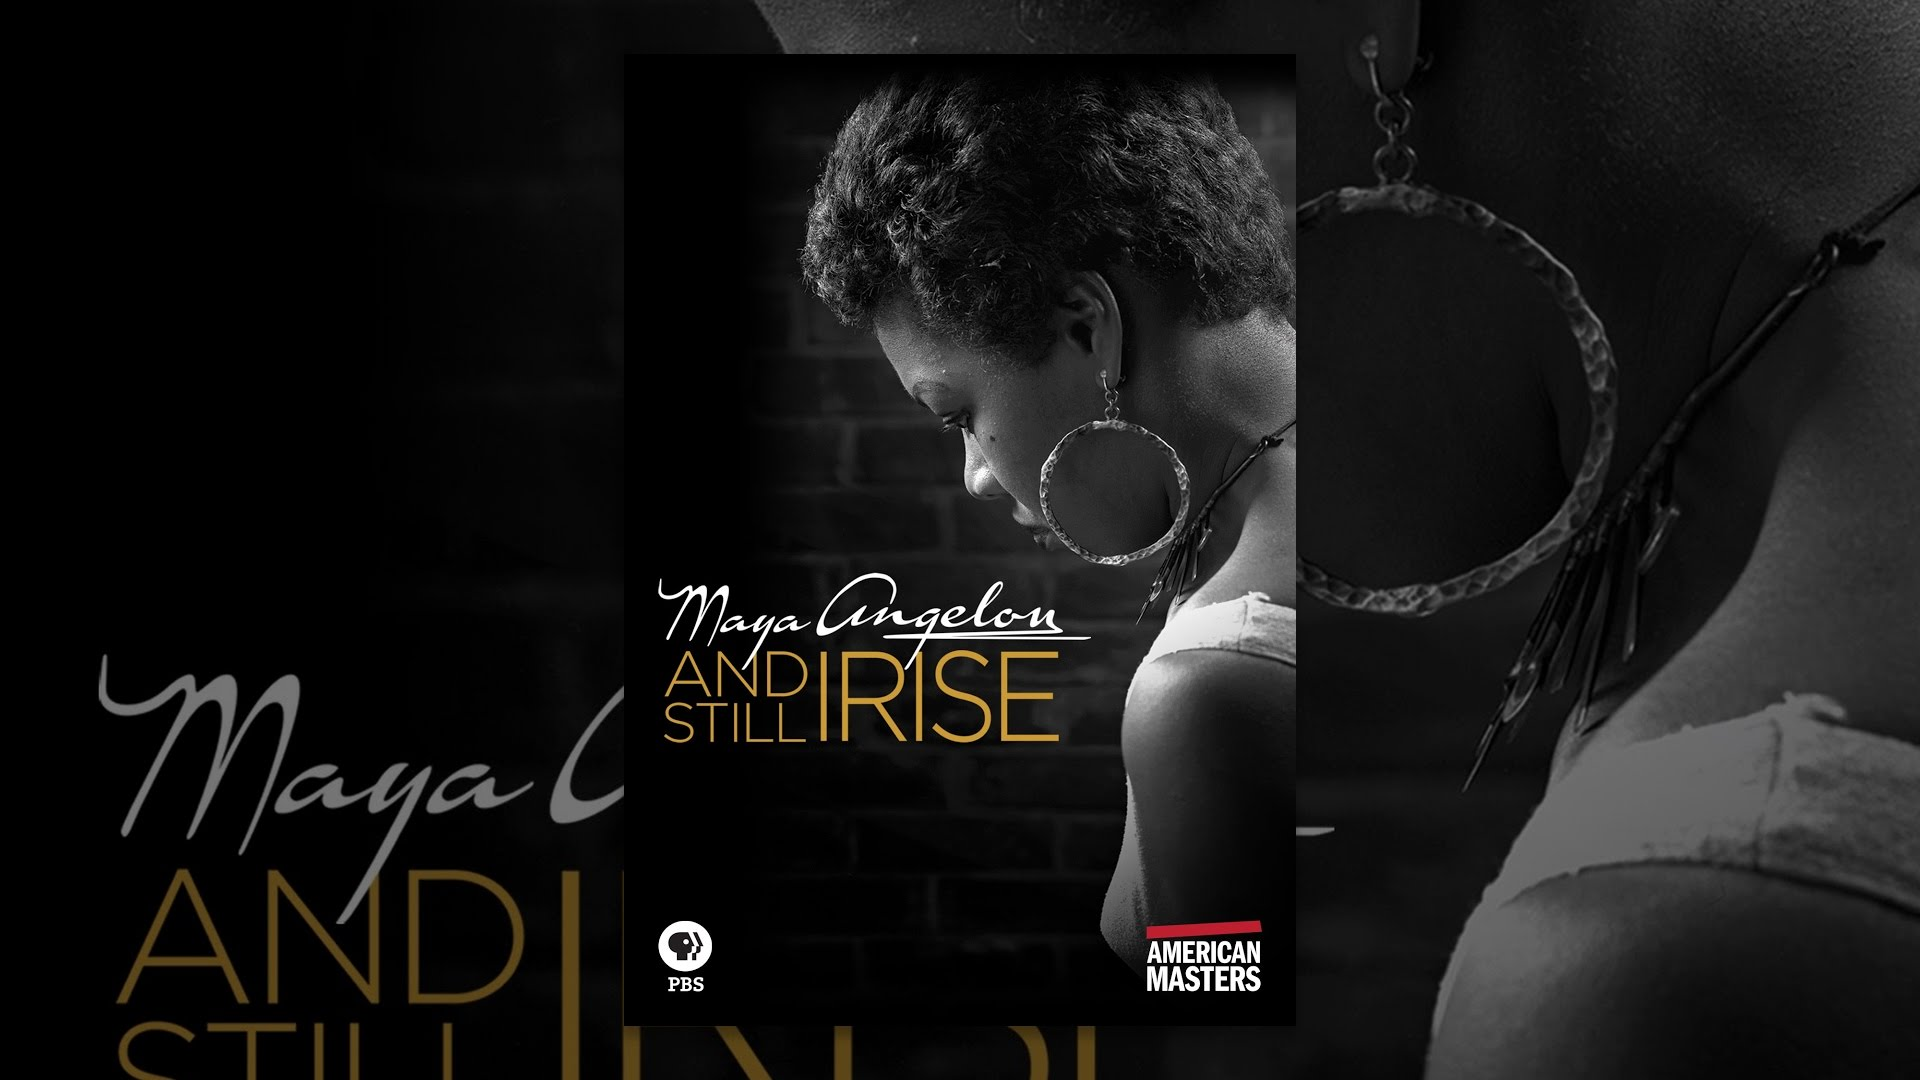 American Masters: Maya Angelou: And Still I Rise